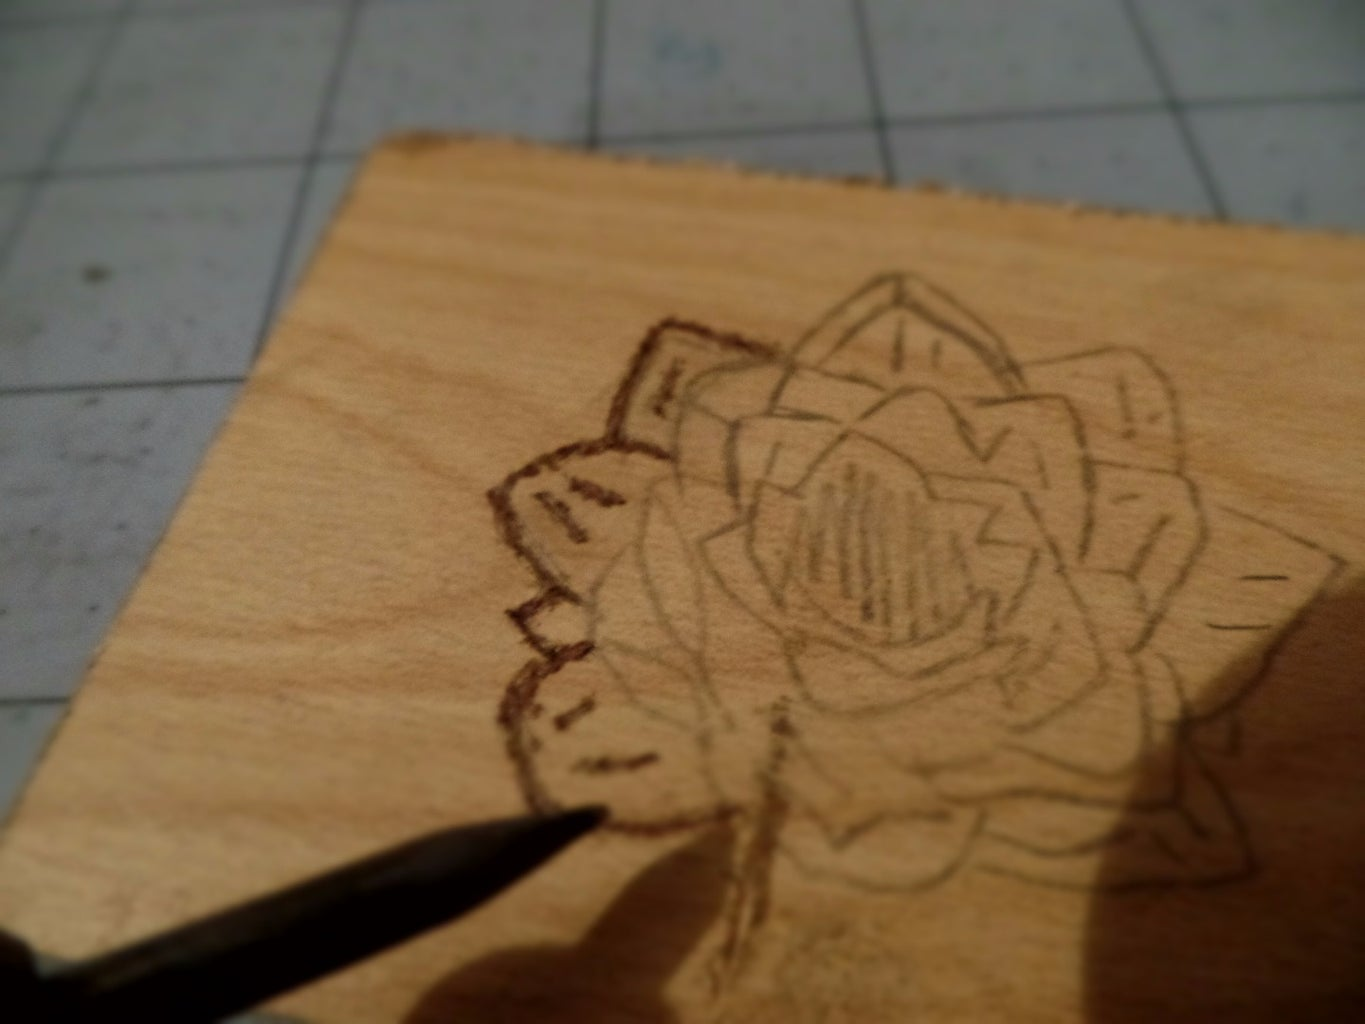 Burn the Design Into the Wood